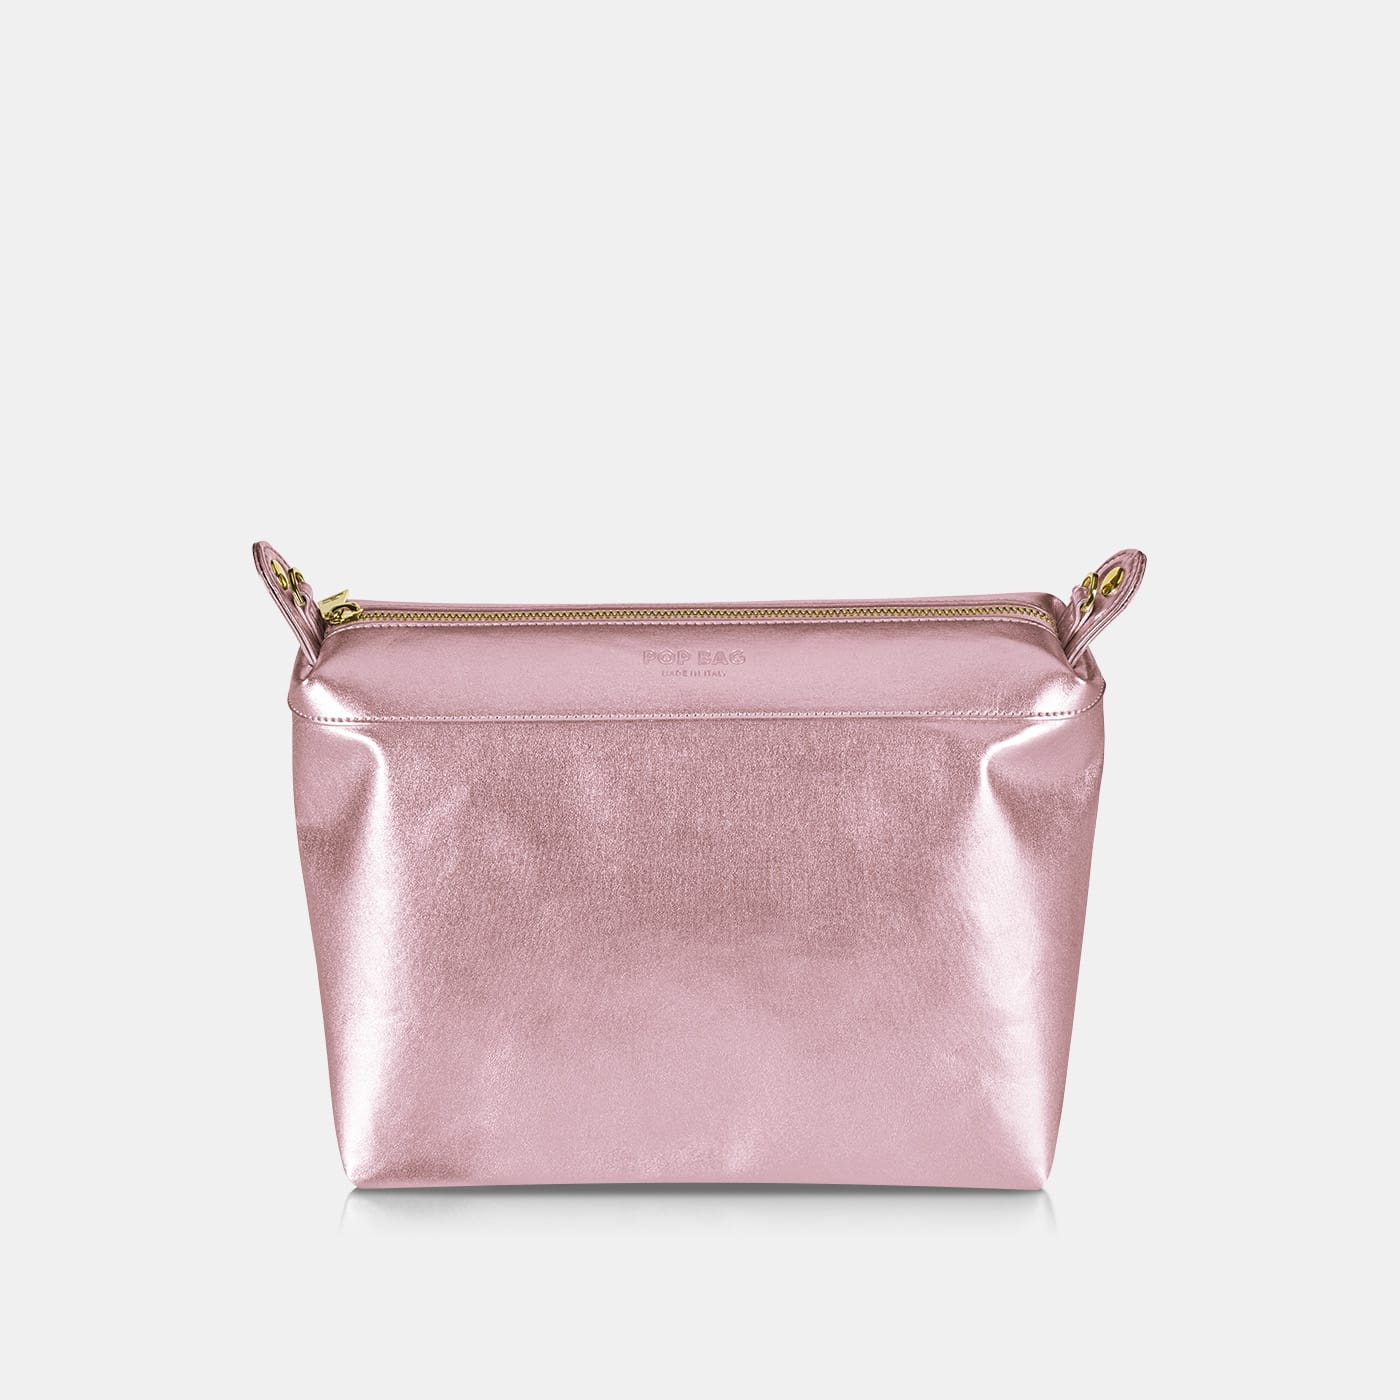 Bag In Bag - Metallic - Pink Metal - Medium